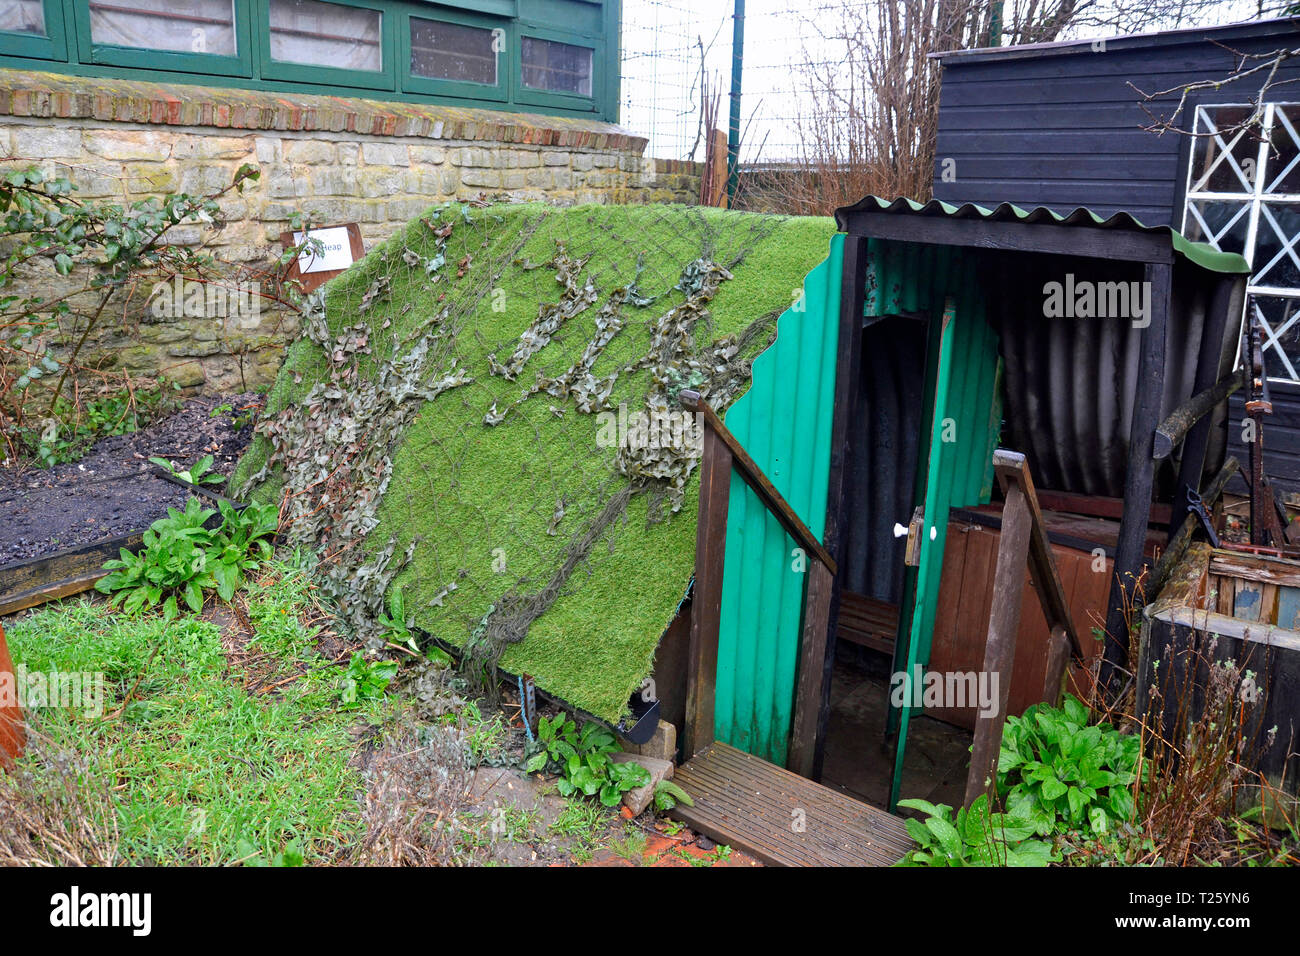 An Anderson Shelter at Milton Keynes Museum, Wolverton and Greenleys, in Milton Keynes, Buckinghamshire, UK - Stock Image